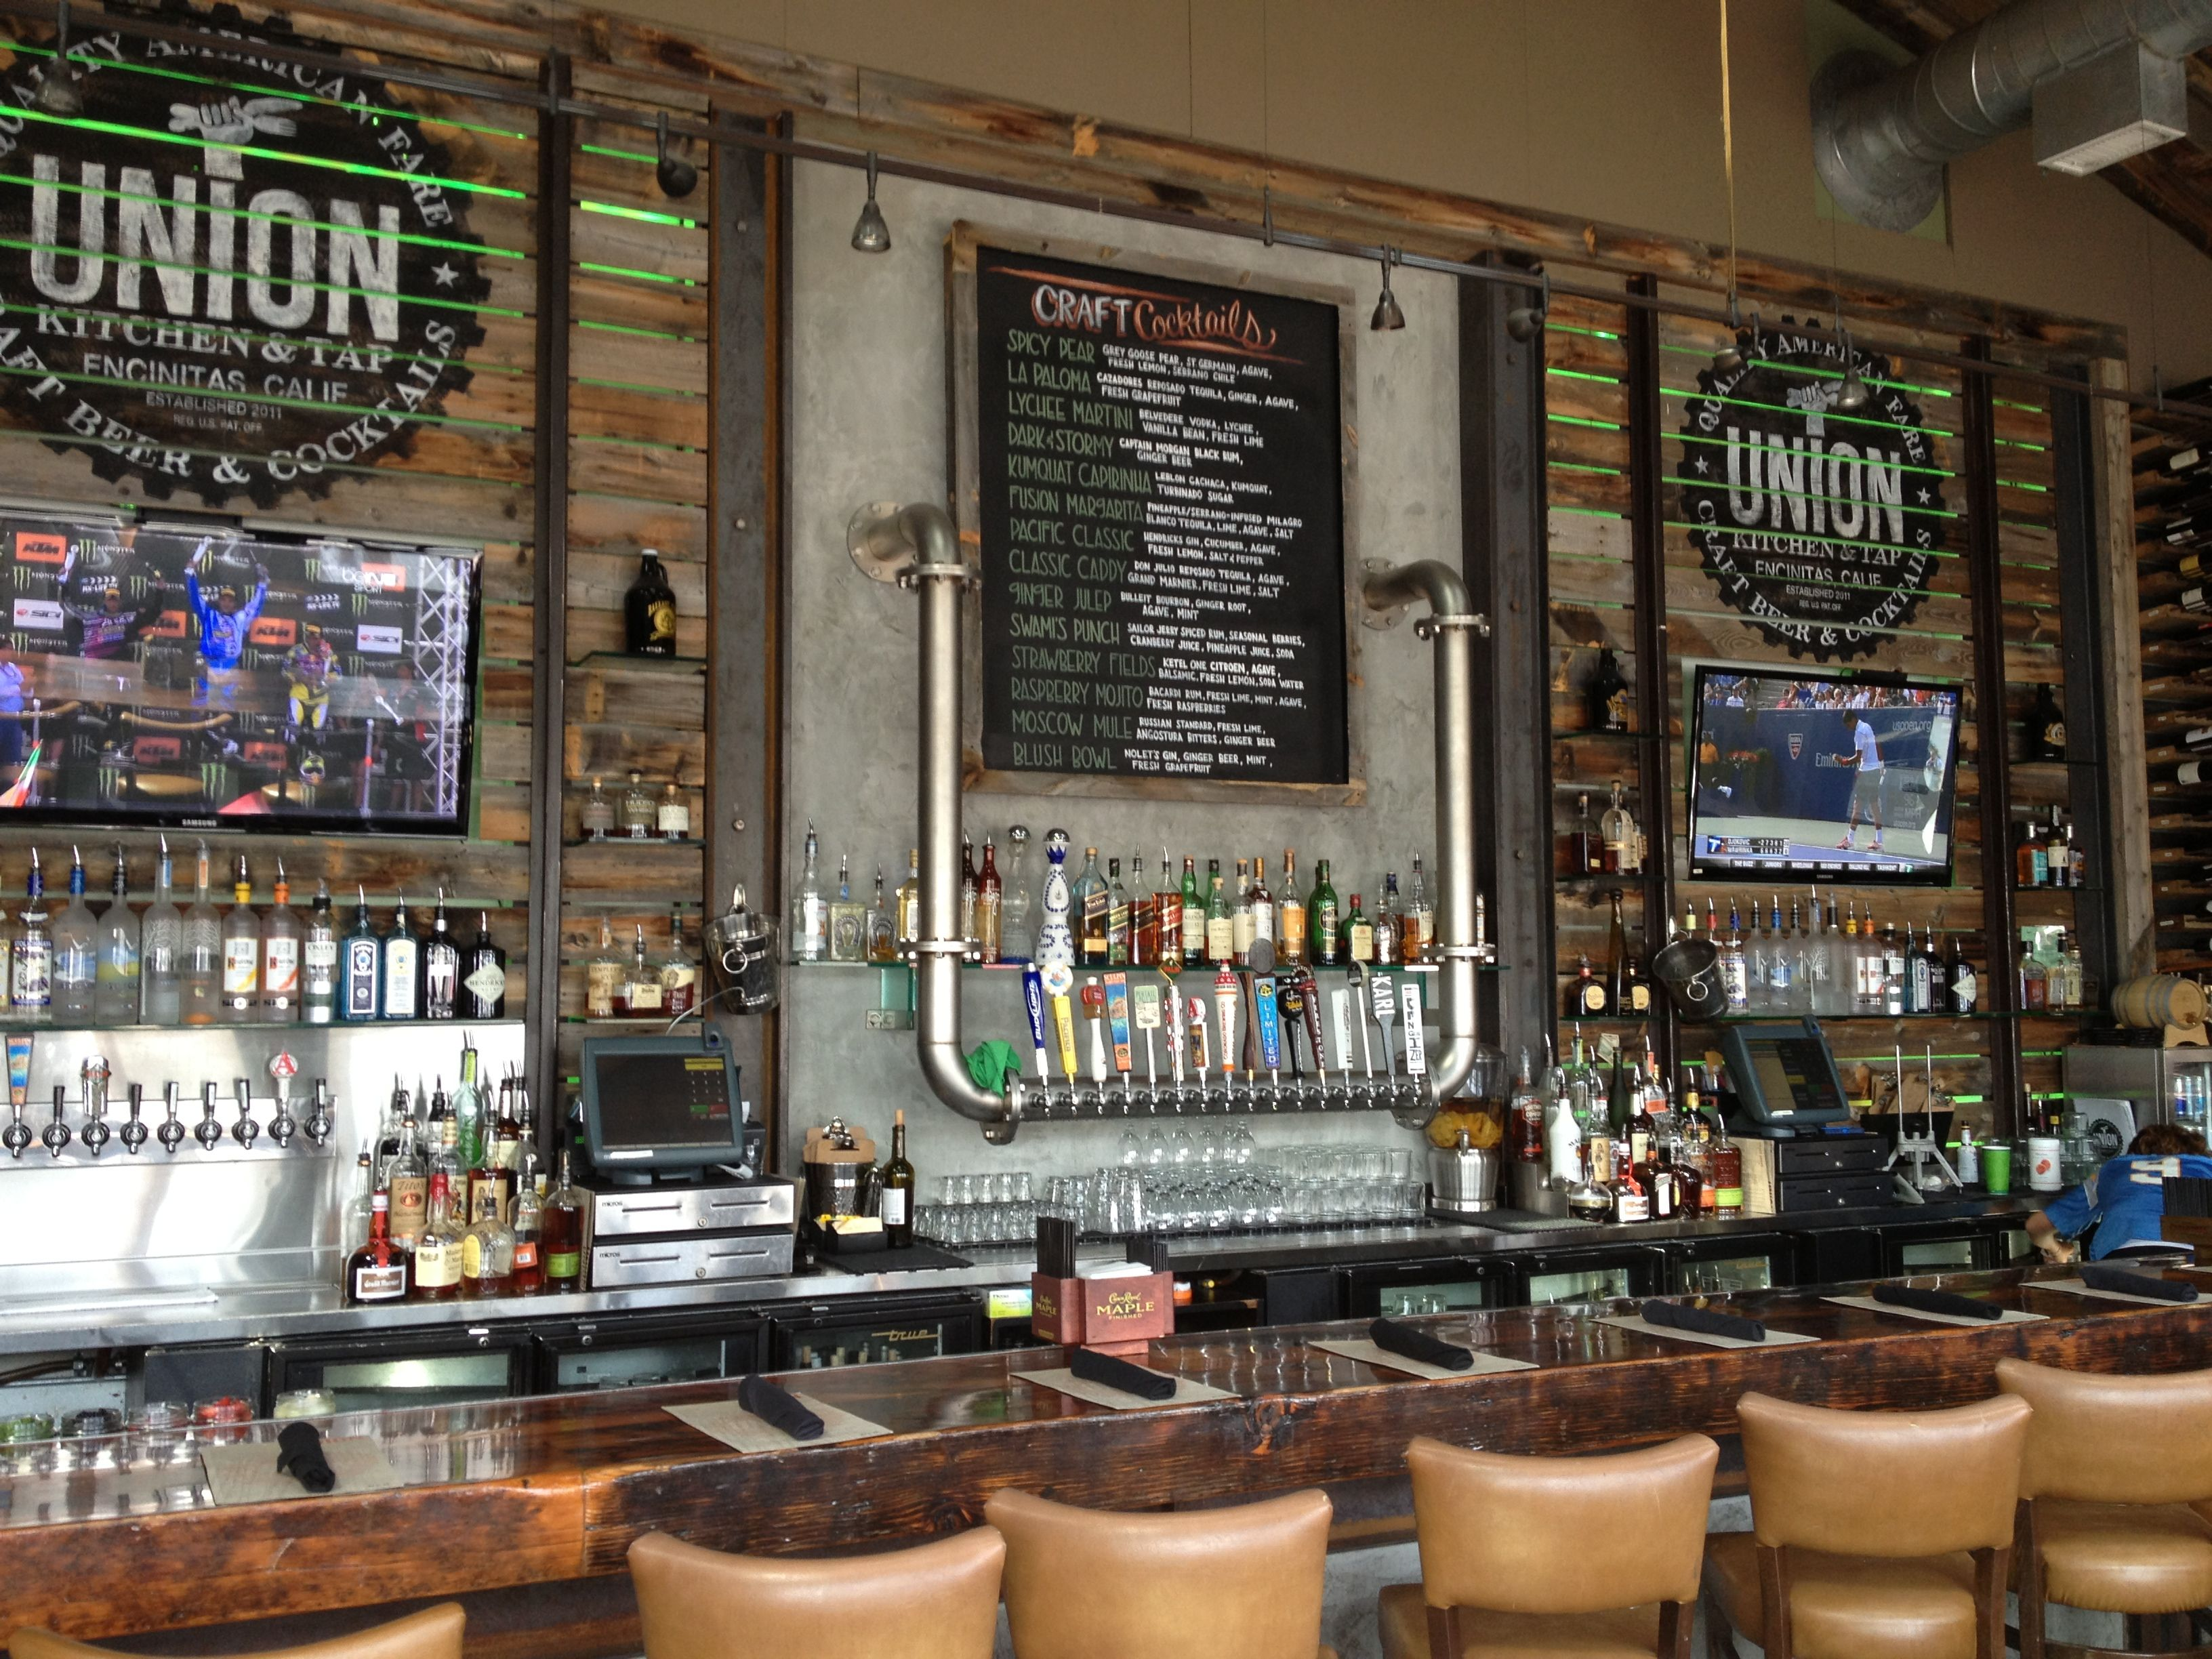 union bar in encinitas great bar design - Restaurant Bar Design Ideas